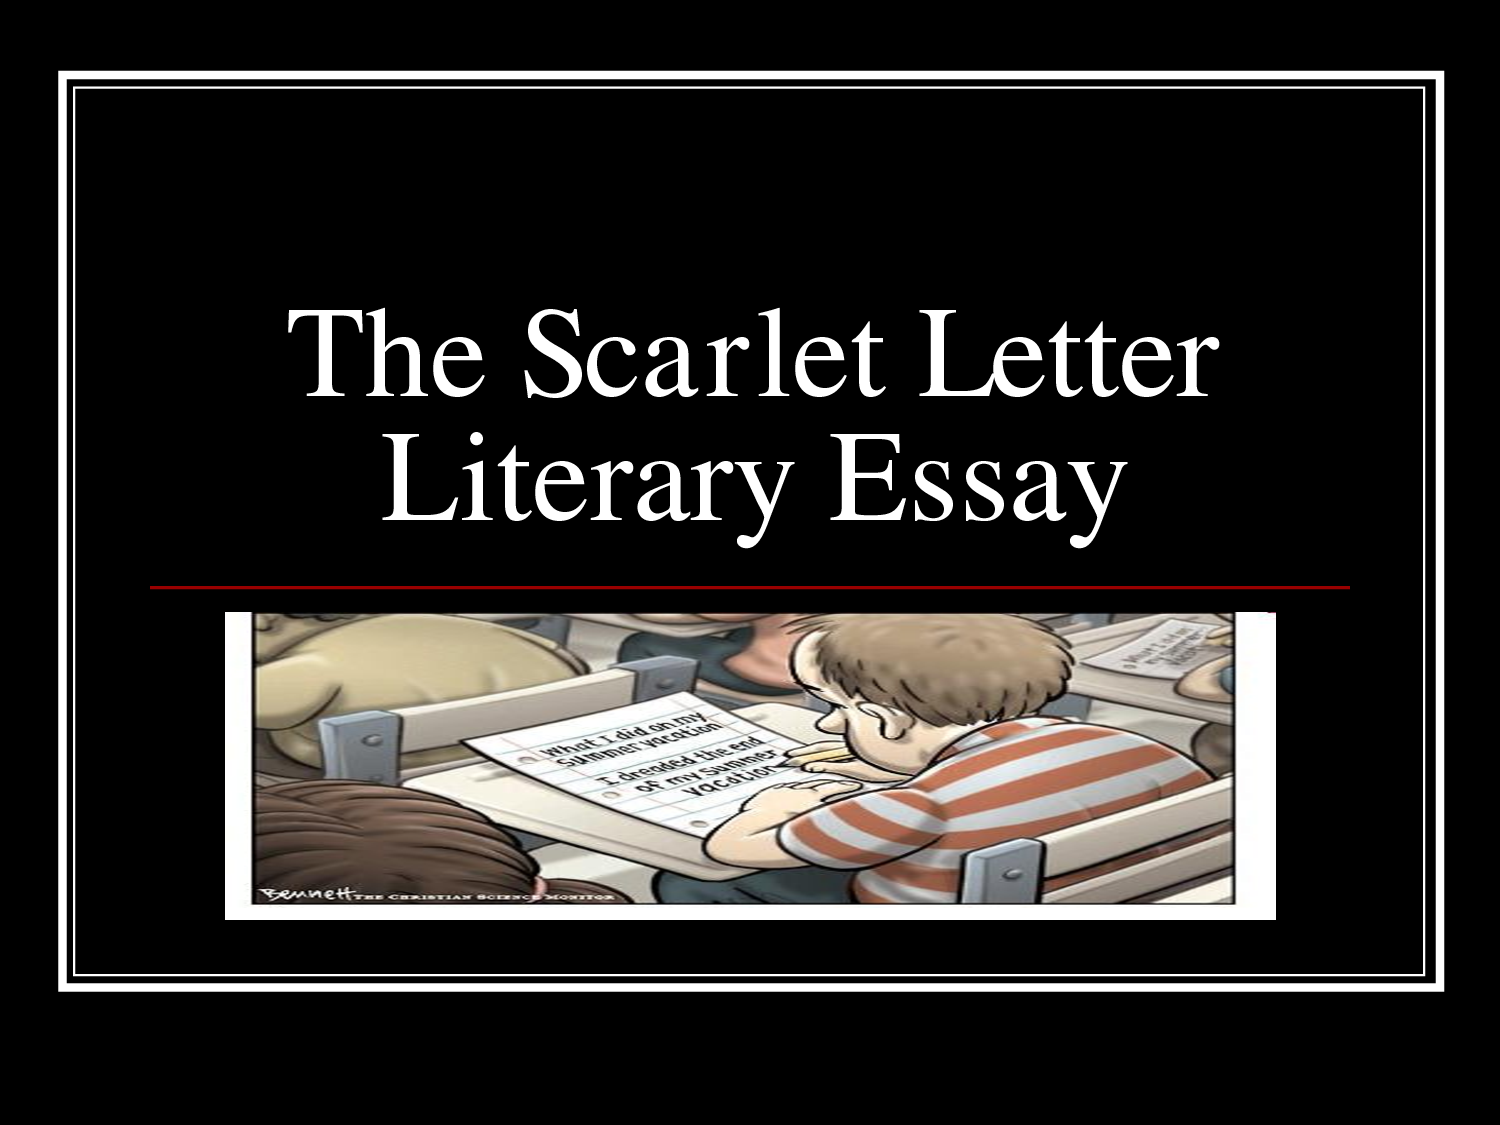 the scarlet letter quotes significant quotes in scarlet letter quotesgram 25235